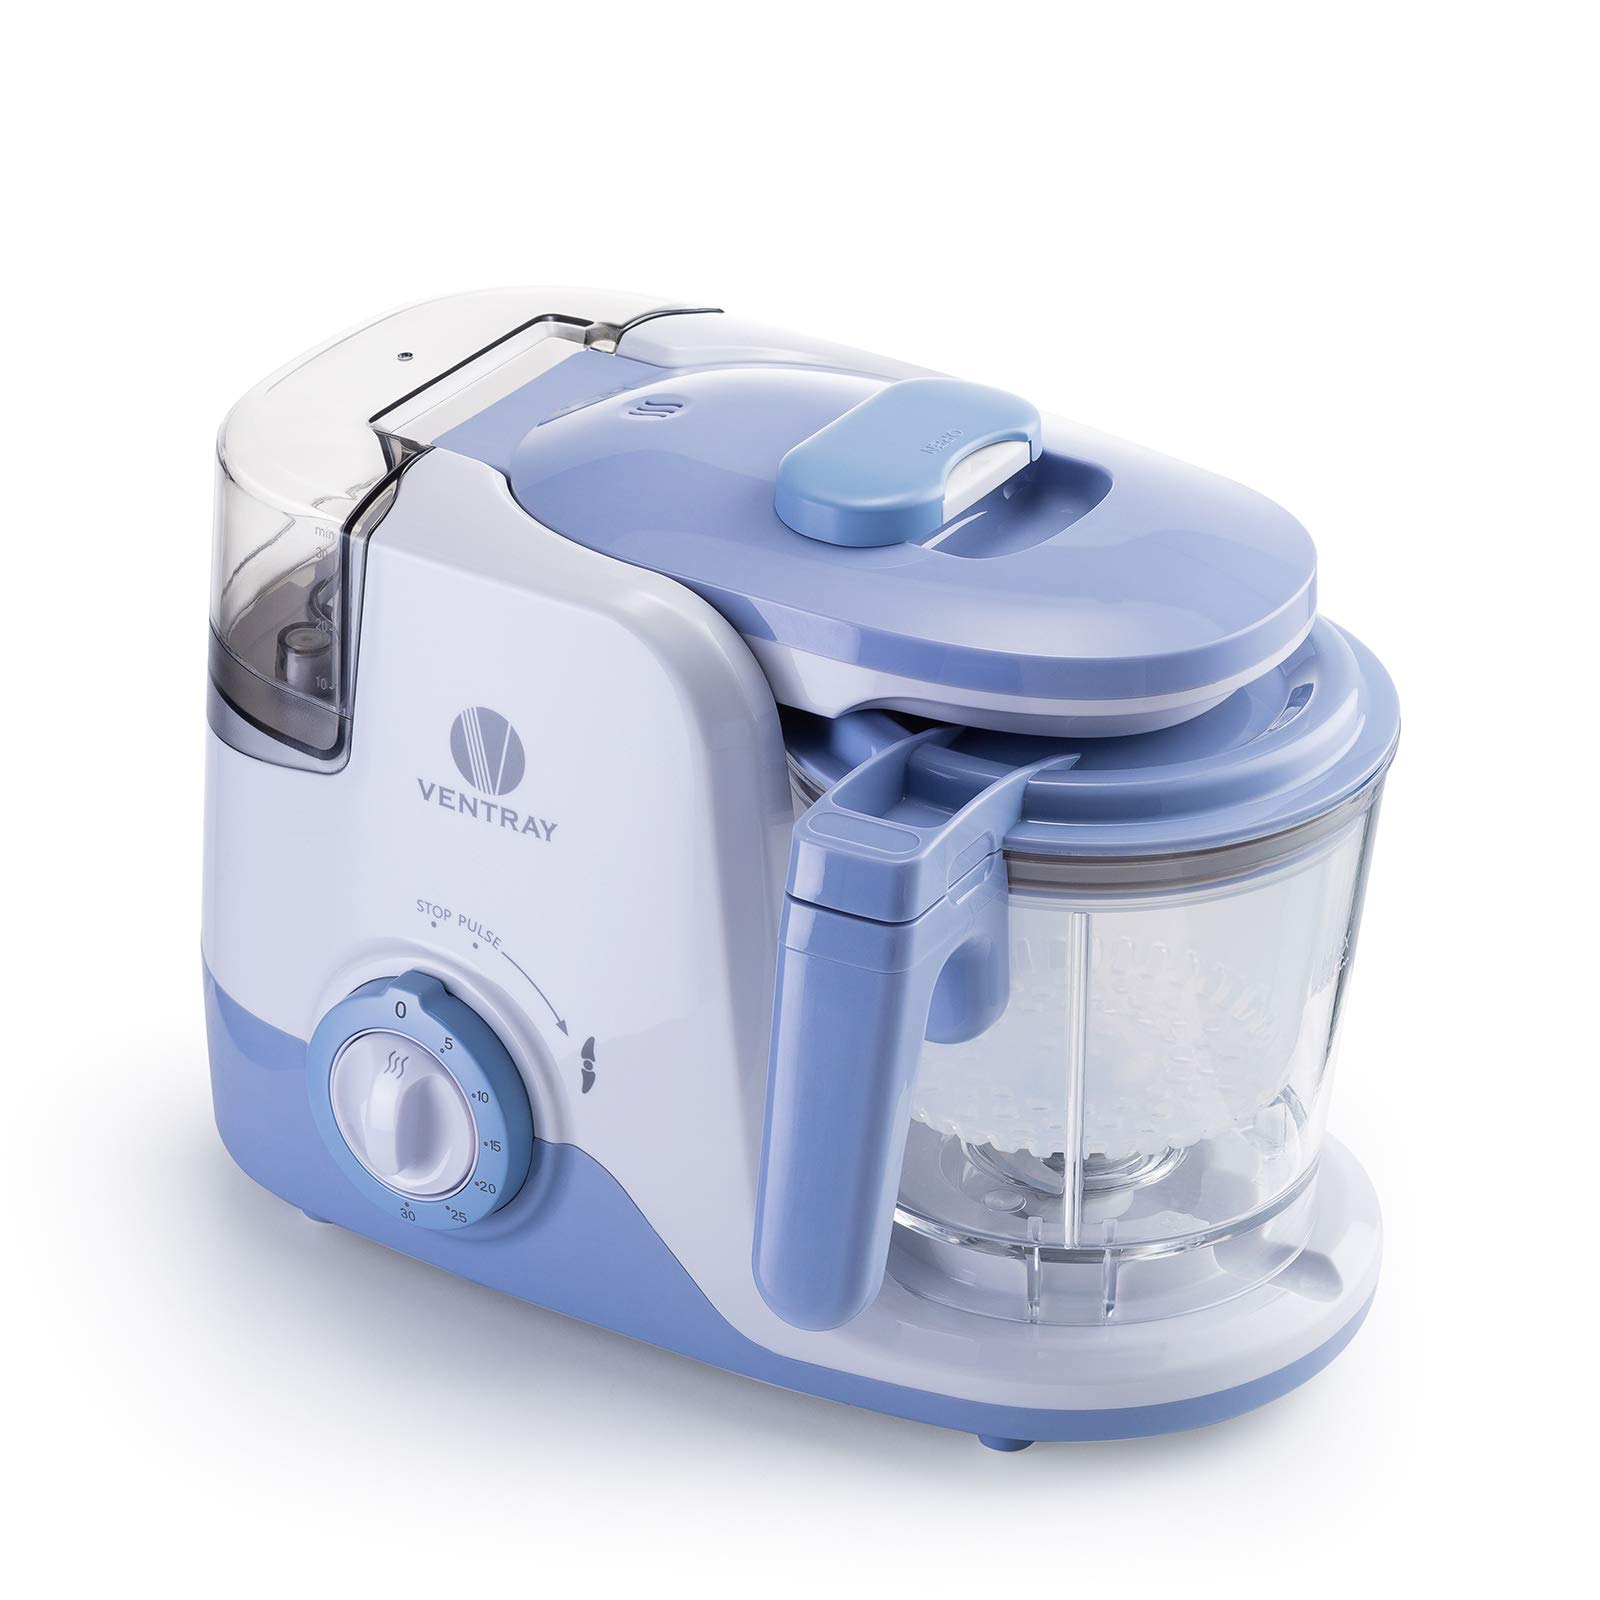 Ventray BabyGrow 600 Purple - All-in-one Quick Steaming and Blending Baby Food Maker - Programmable Premium Baby Food Processor with Removable Water Tank